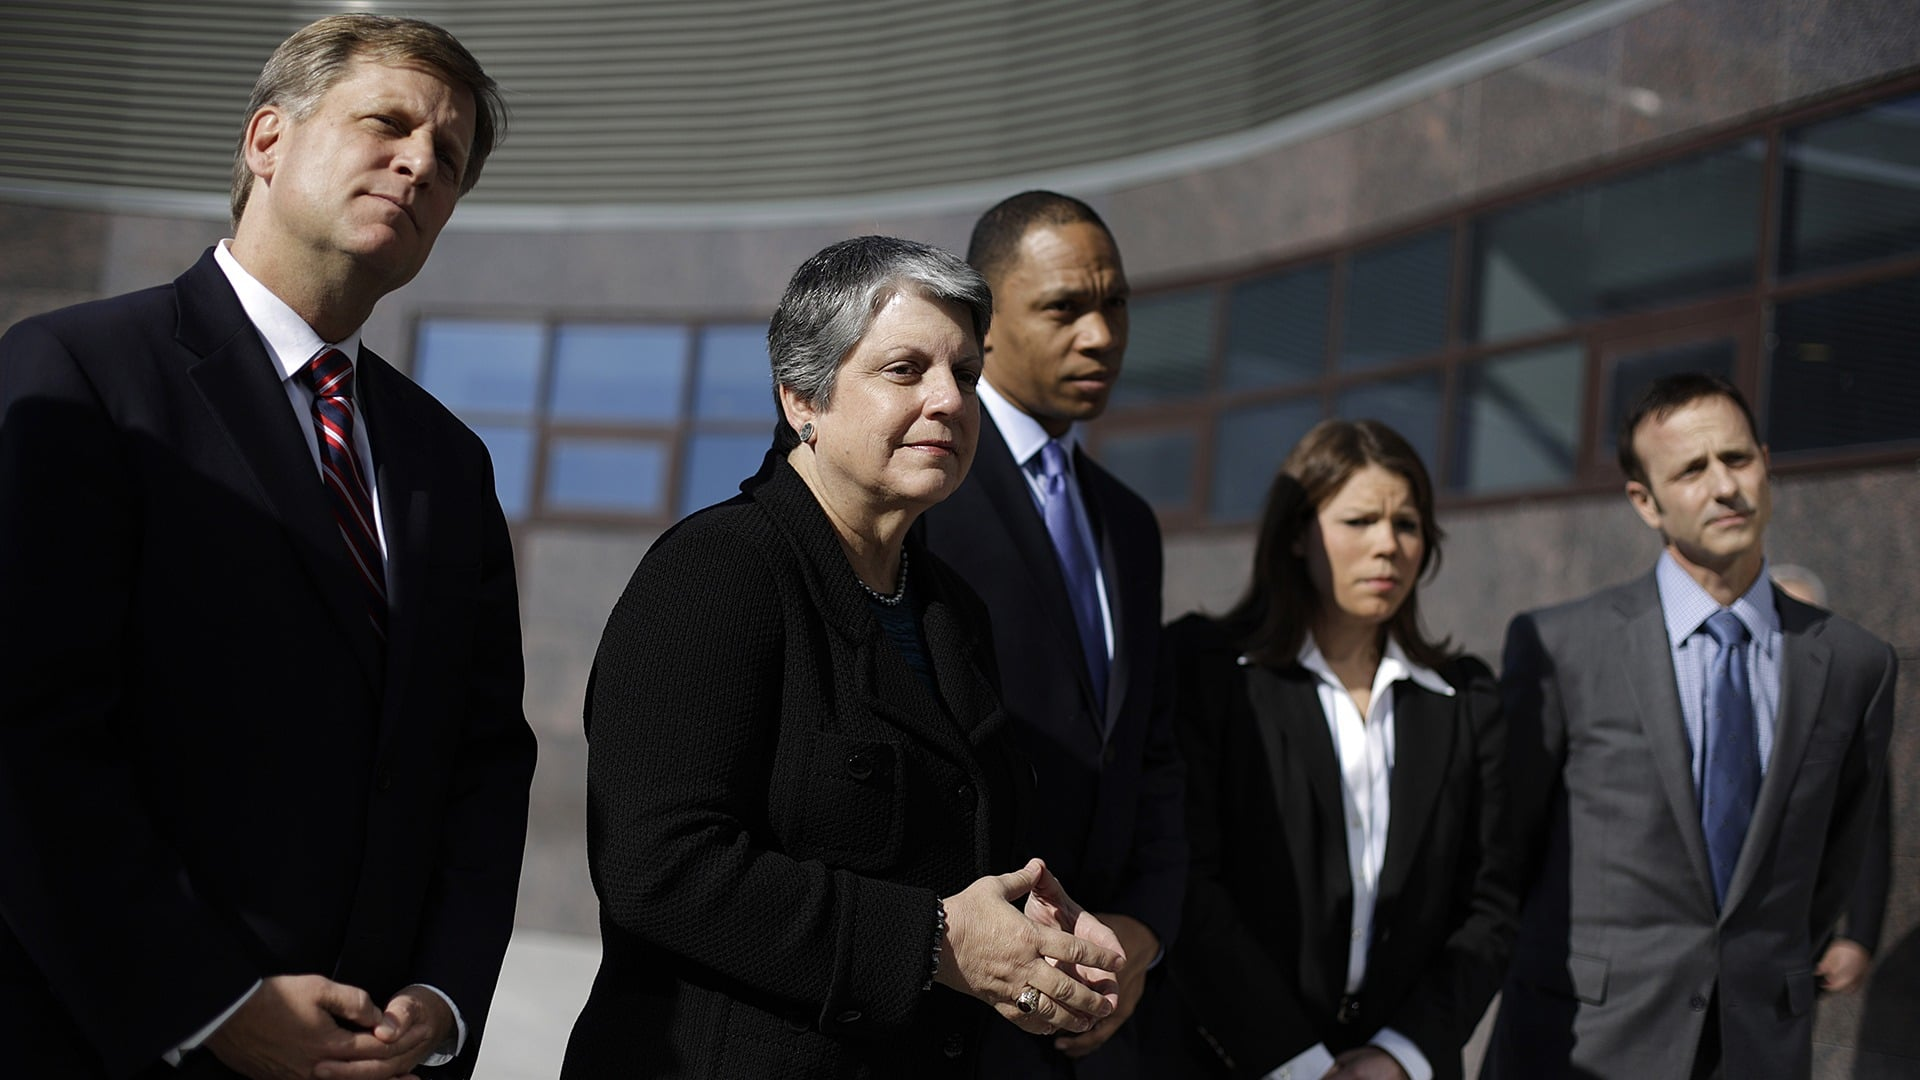 From left, U.S. Ambassador to Russia Michael McFaul, former Homeland Security Secretary Janet Napolitano, Assistant to the President and Deputy Chief of Staff Robert Nabors, hockey player Caitlin Cahow and figure skater Brian Boitano attend a news conference.